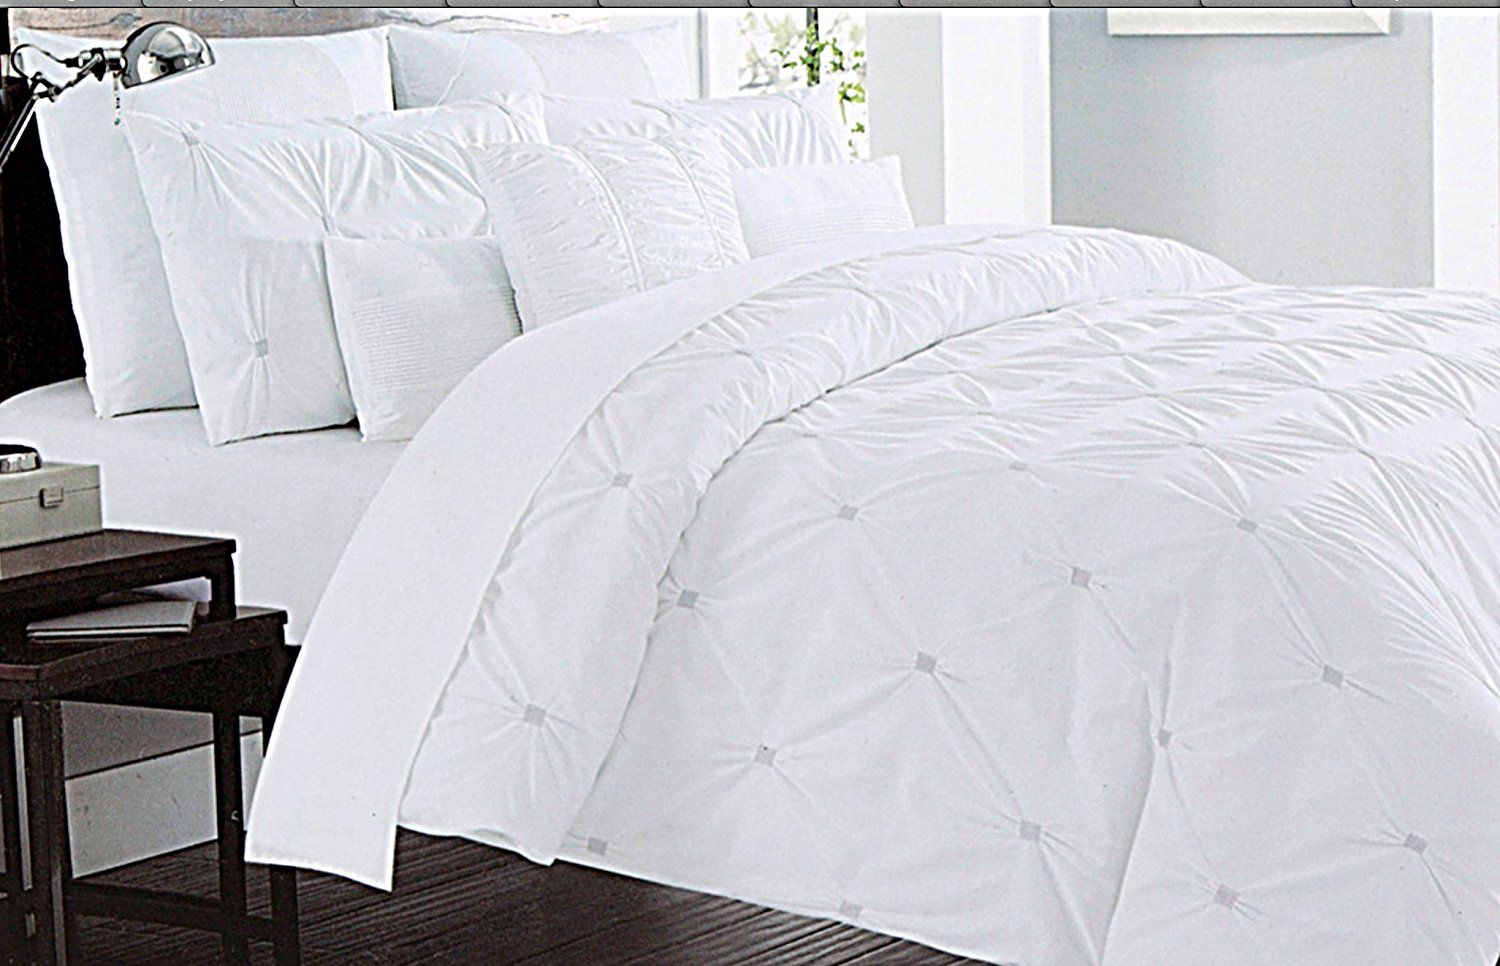 size california excellent and beautiful cal decor idea quality in fabric bedding comforter duvet king onther design